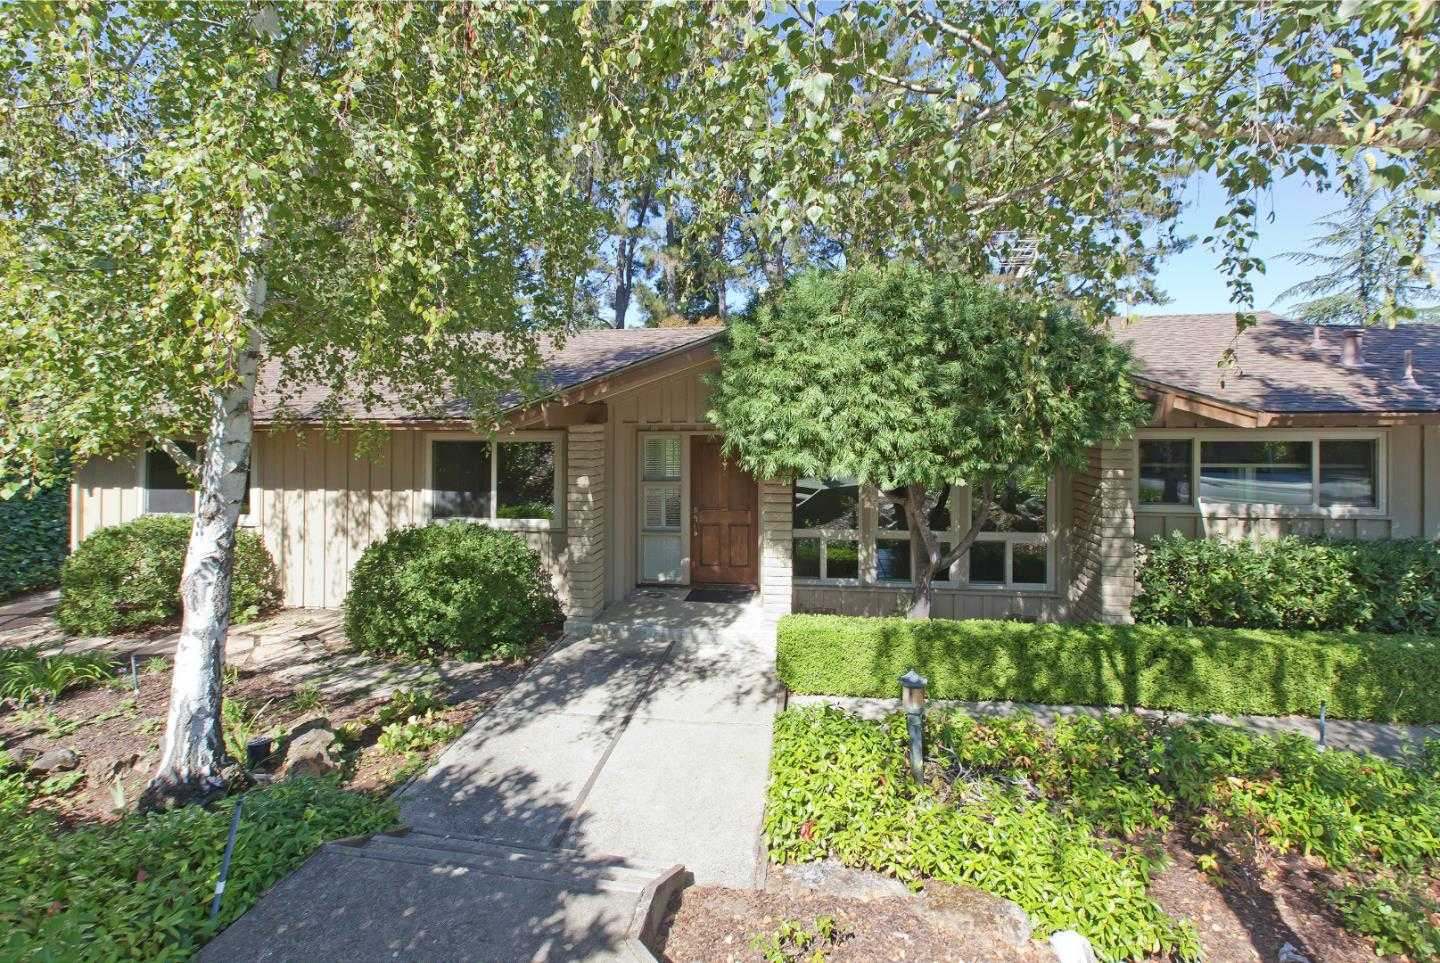 $3,100,000 - 4Br/2Ba -  for Sale in Menlo Park